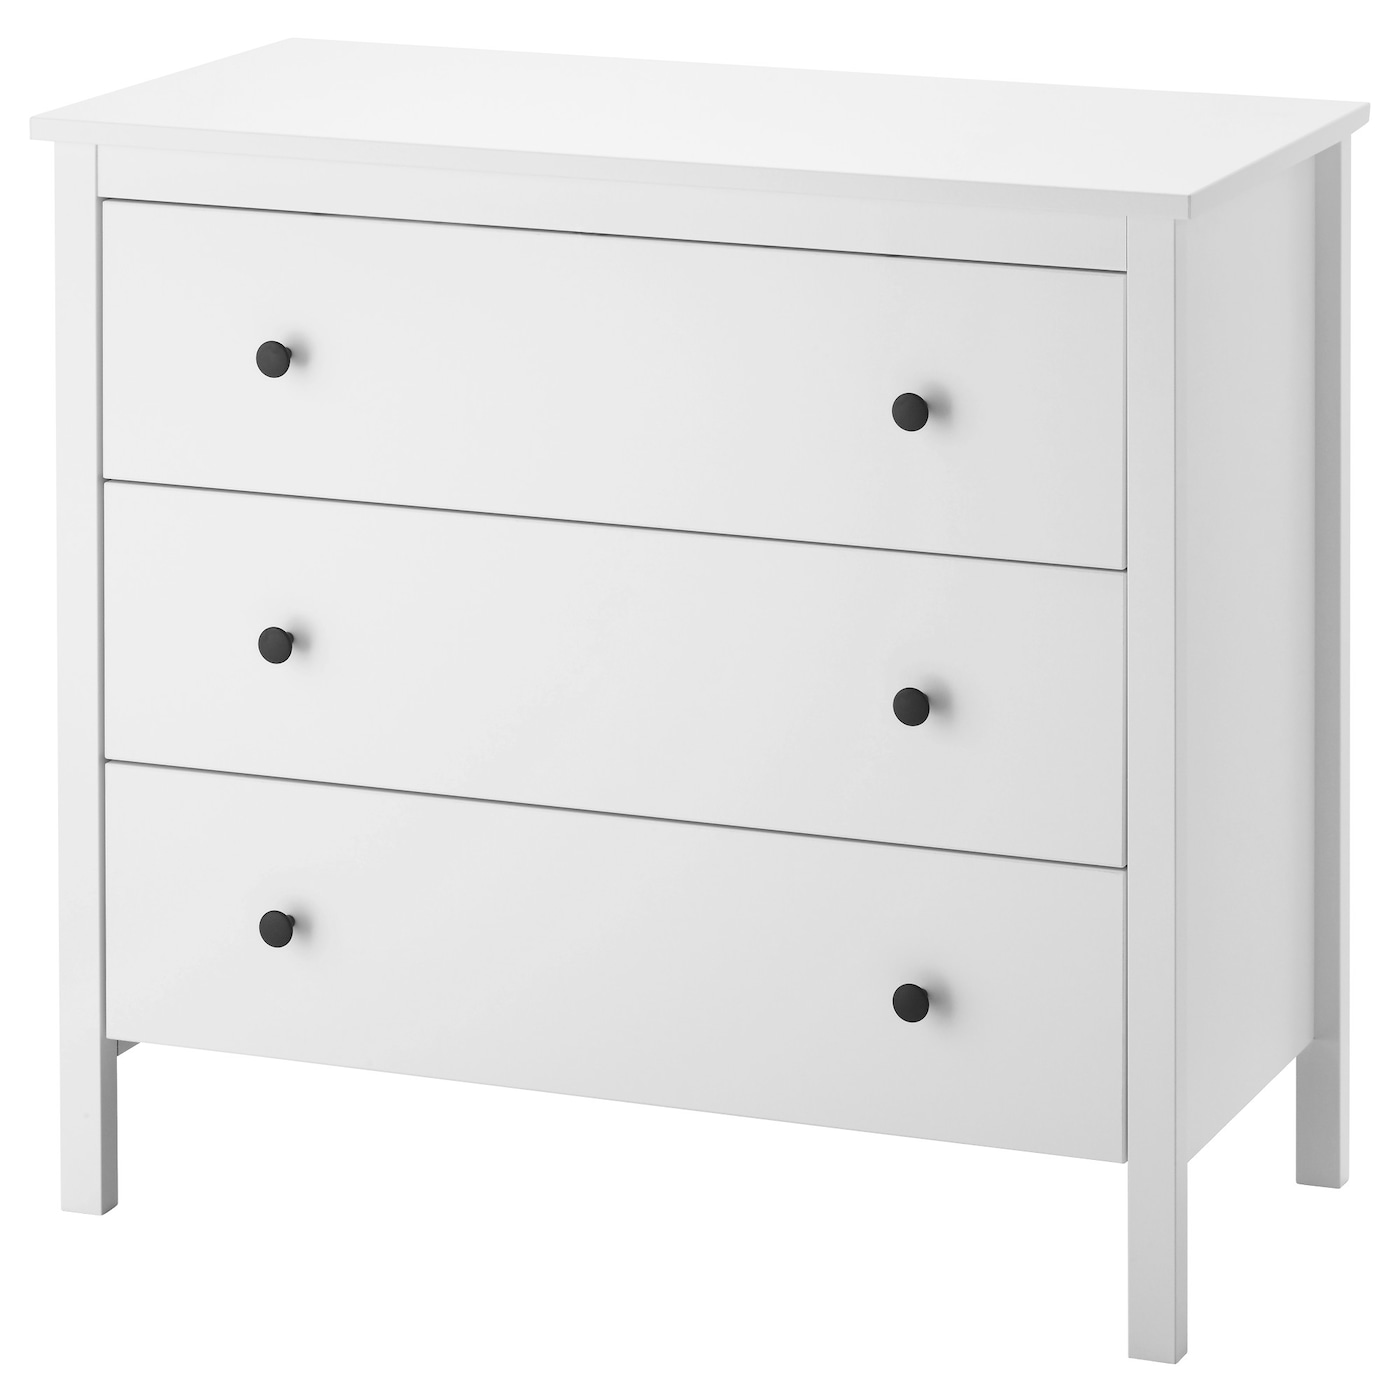 koppang commode 3 tiroirs blanc 90x83 cm ikea. Black Bedroom Furniture Sets. Home Design Ideas